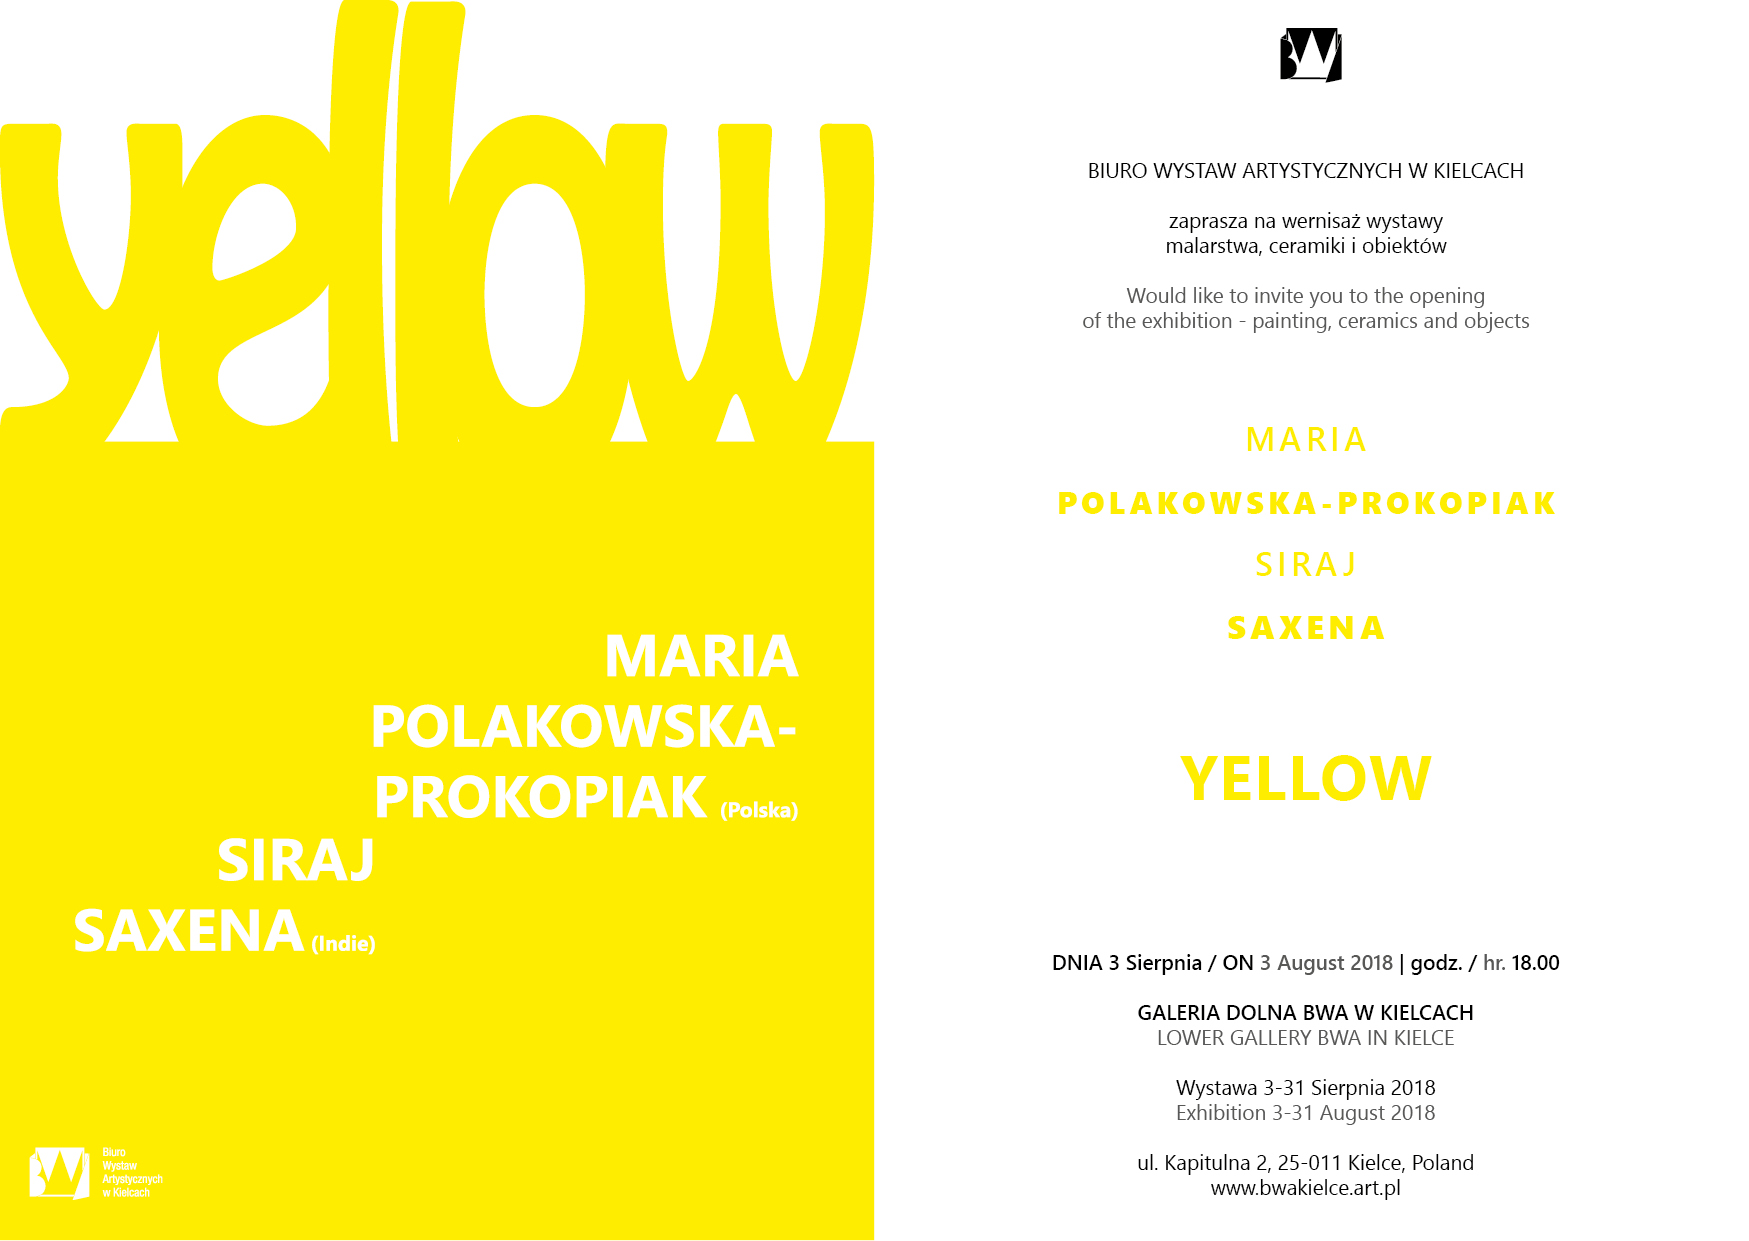 invitation YELLOW BWA Kielce 3 august 2018